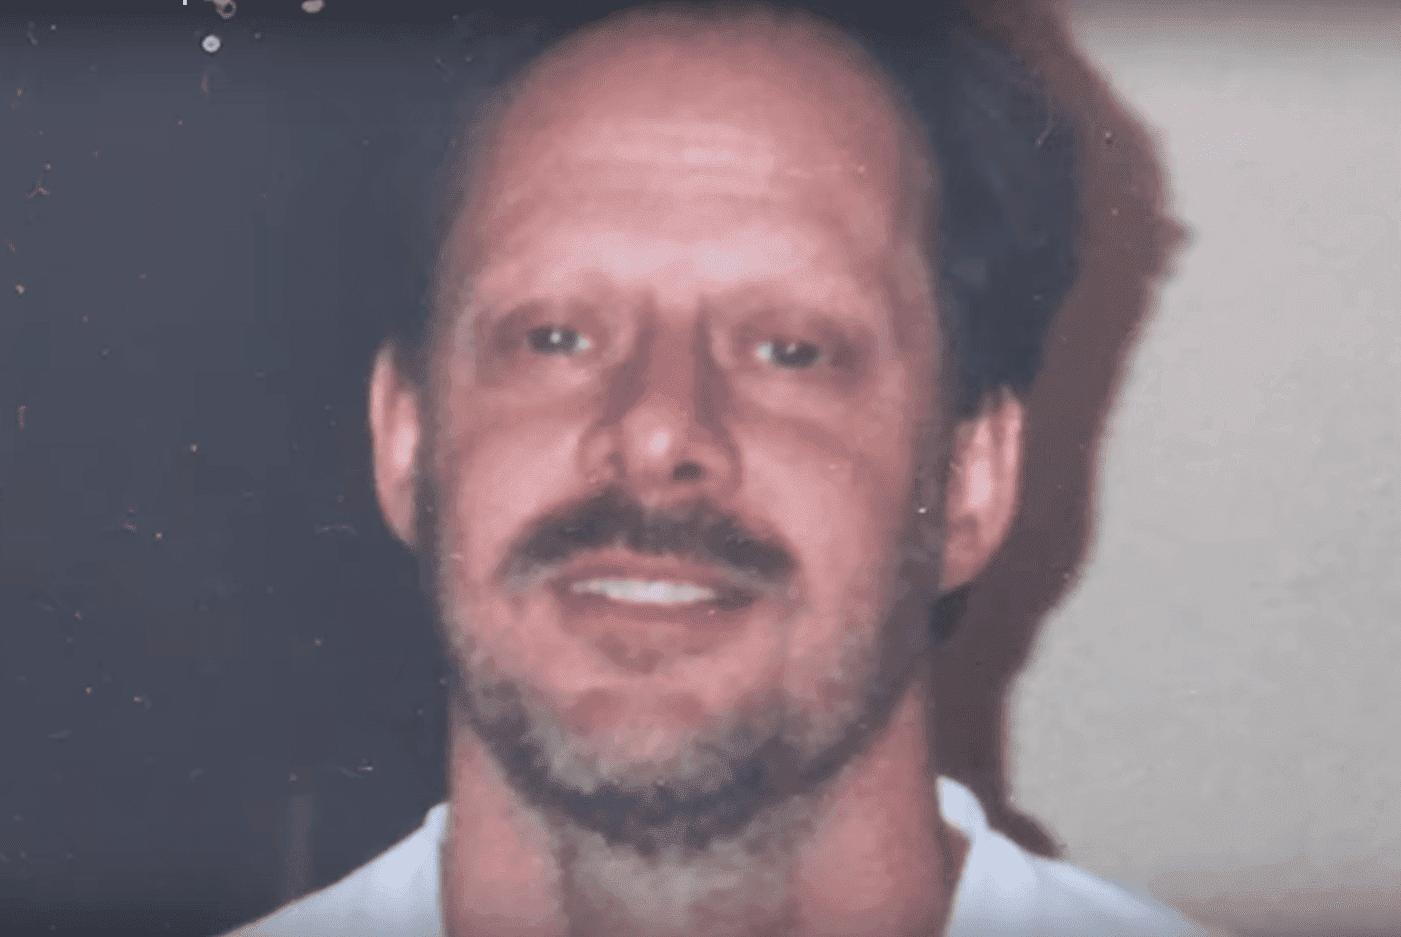 Stephen Paddock carried out the deadliest mass shooting in U.S. history. | Photo: YouTube/Fox News